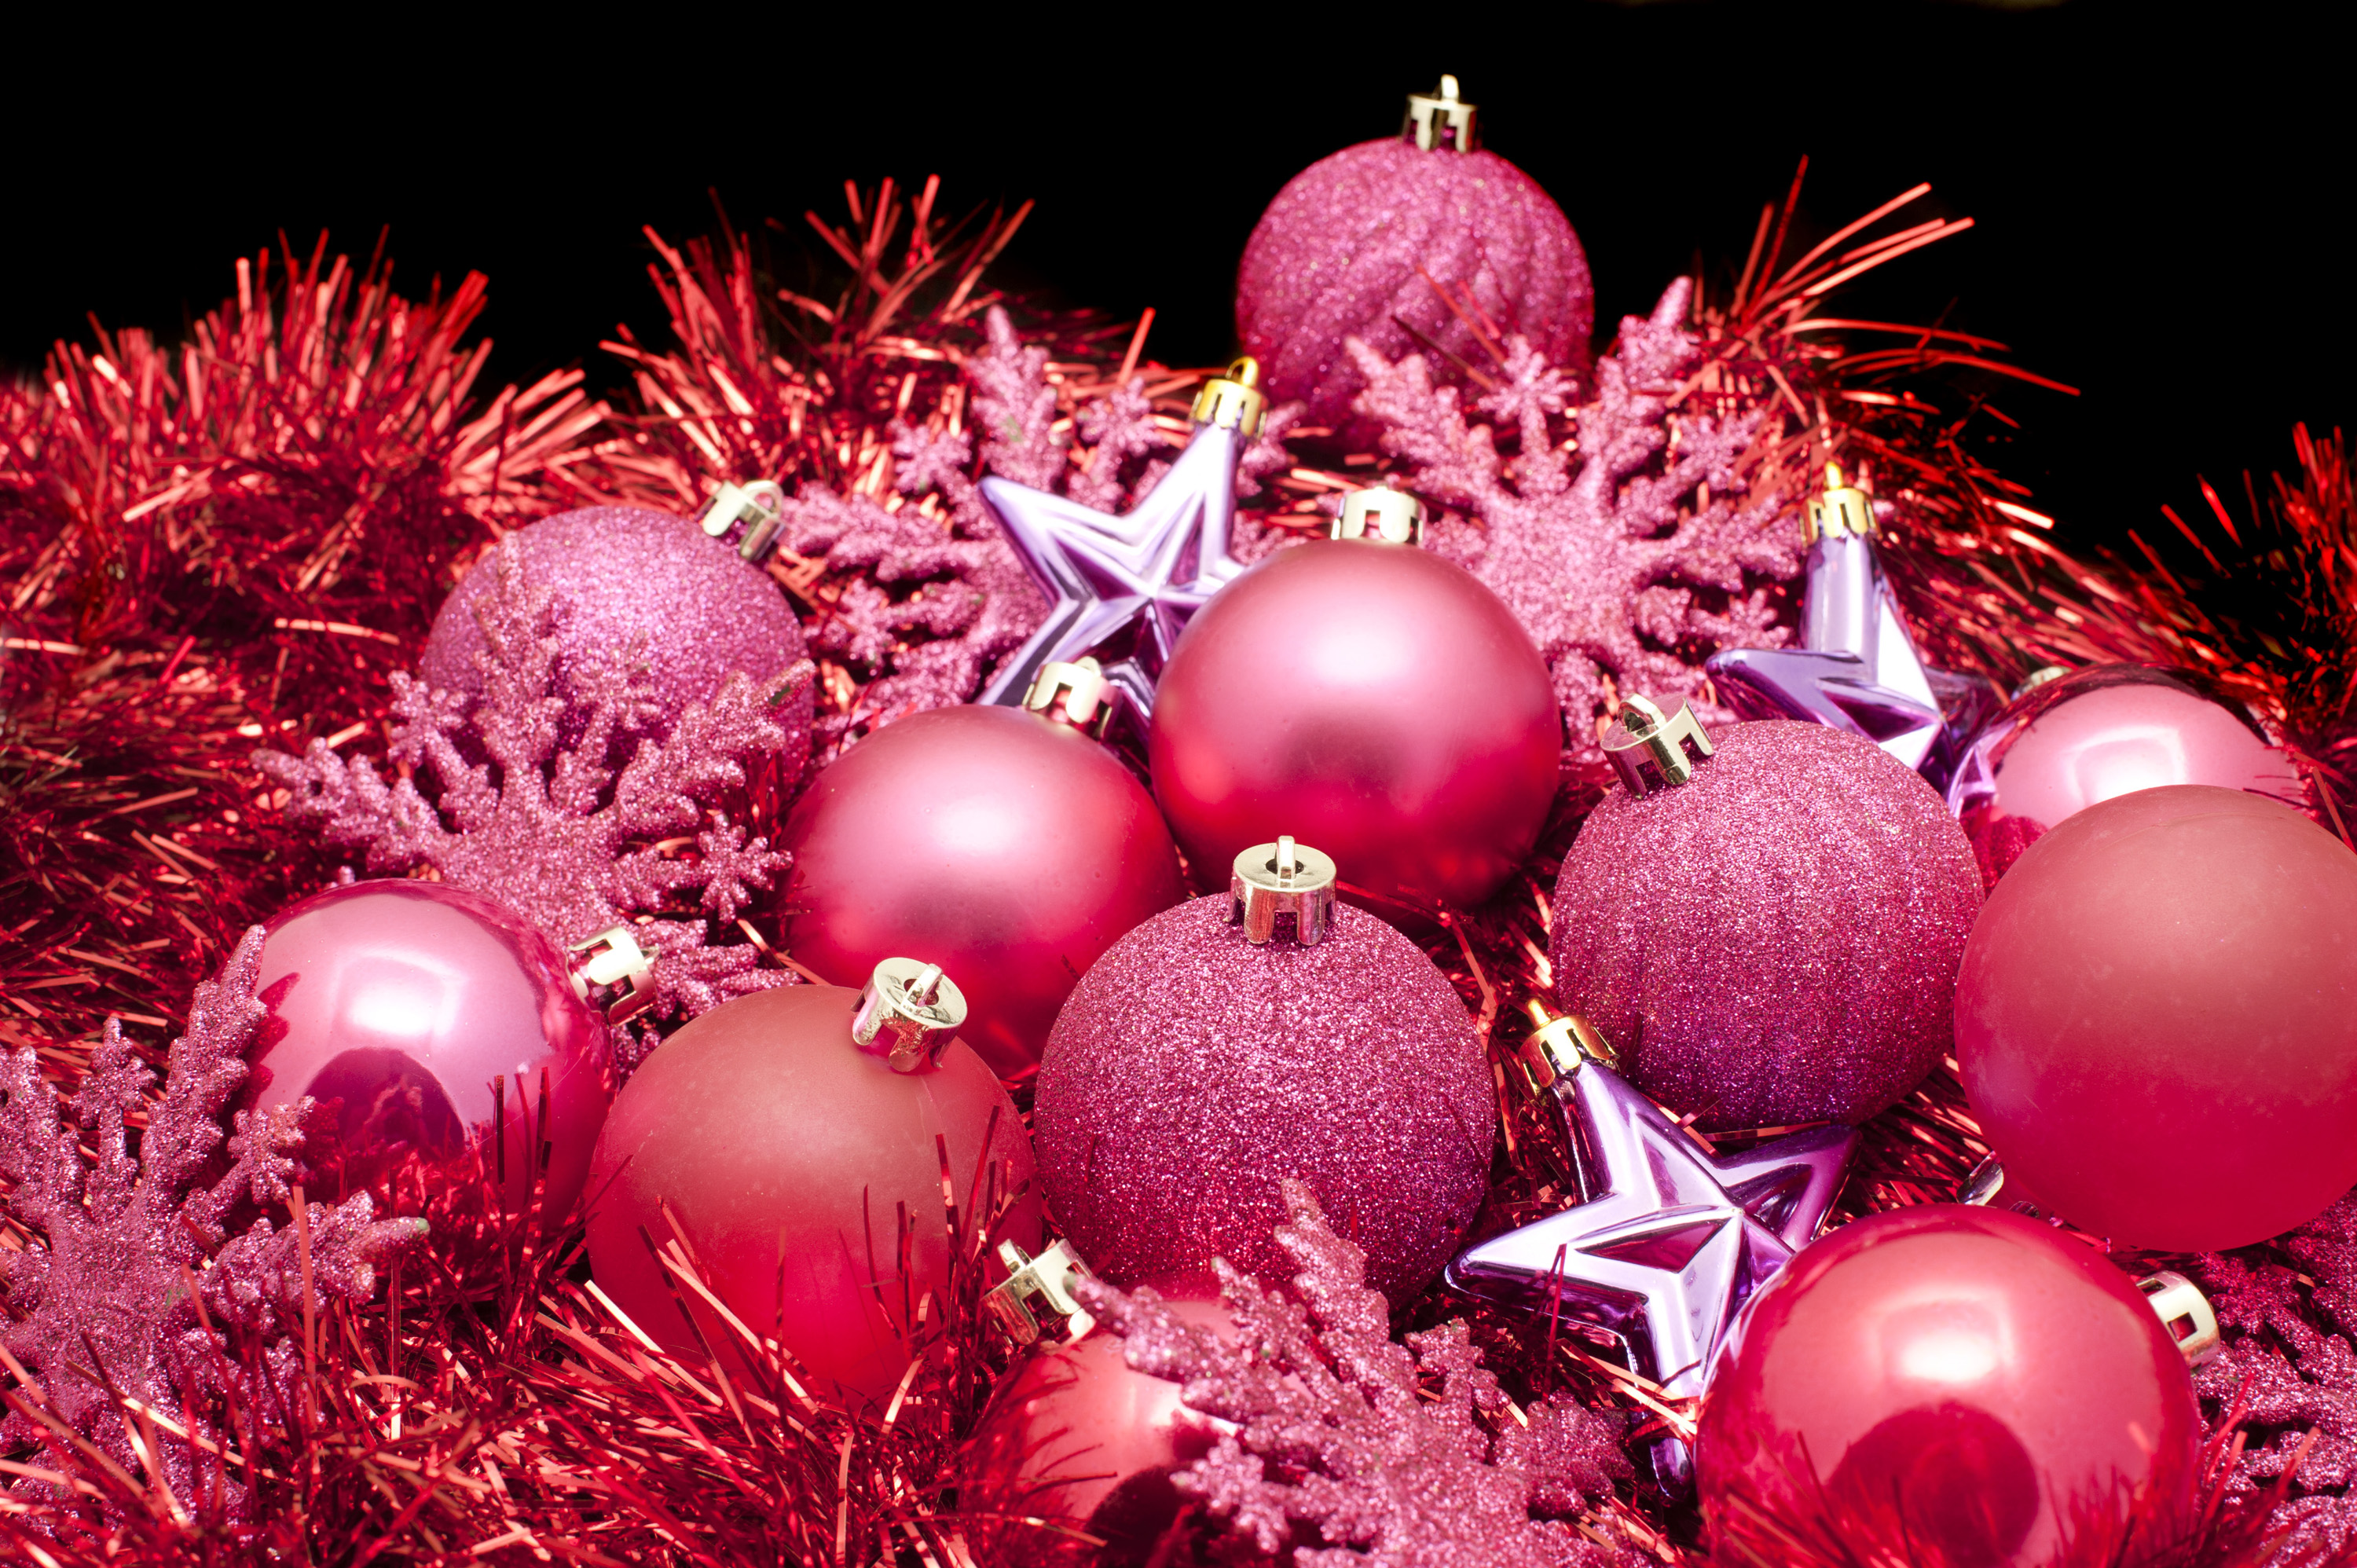 an arrangemnt of red cooured christmas decroations baubles tree ornaments and tinsel - Christmas Decor Catalogs Free